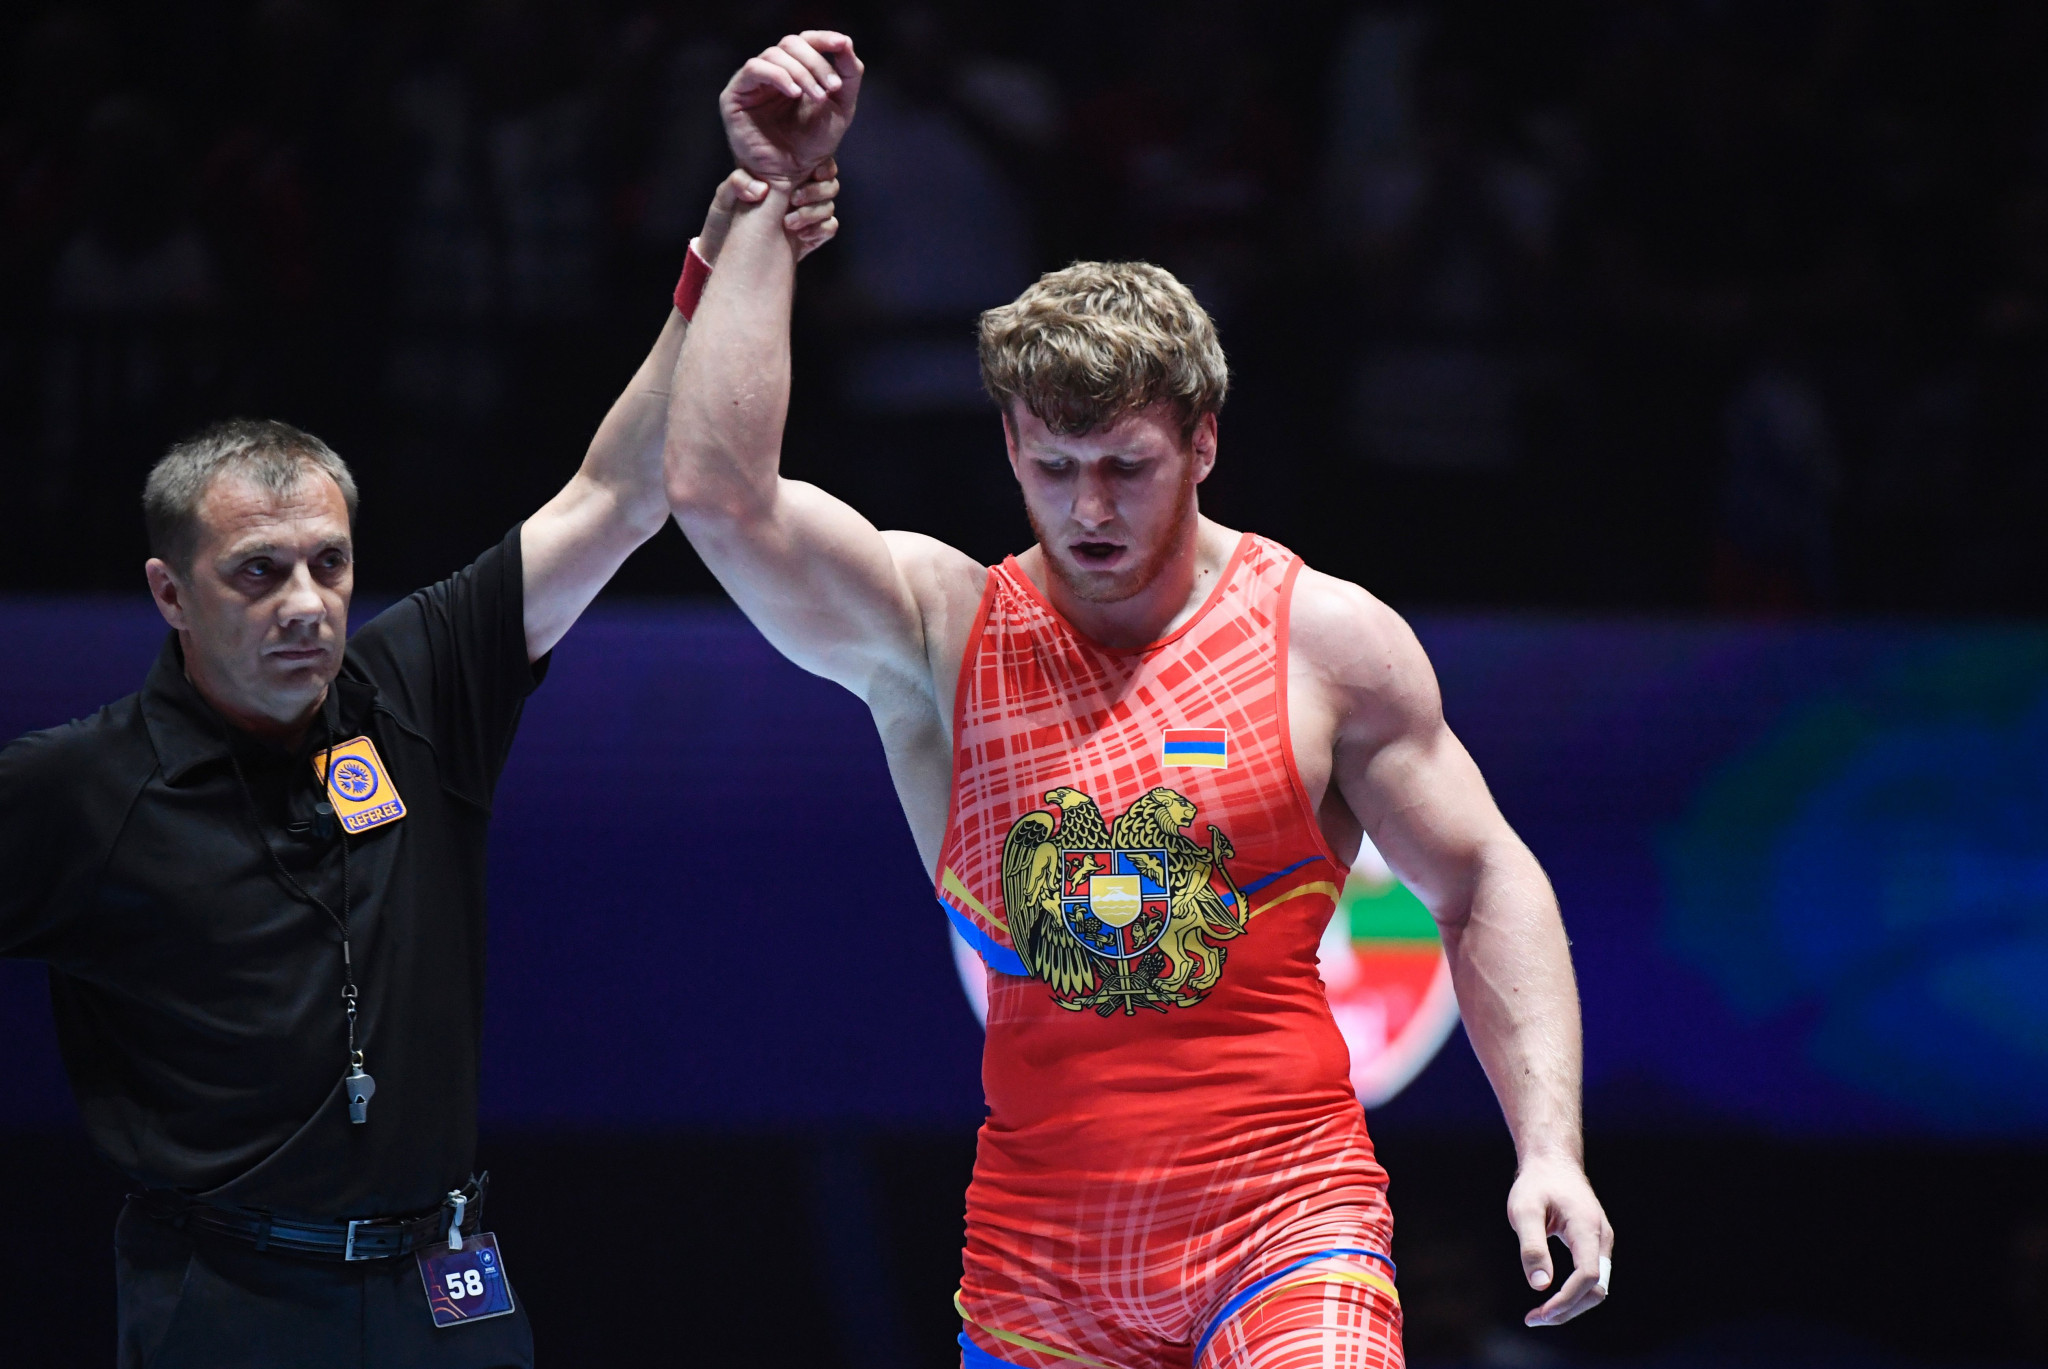 The coach and father of Rio 2016 gold medallist Artur Aleksanyan led one of the courses ©Getty Images